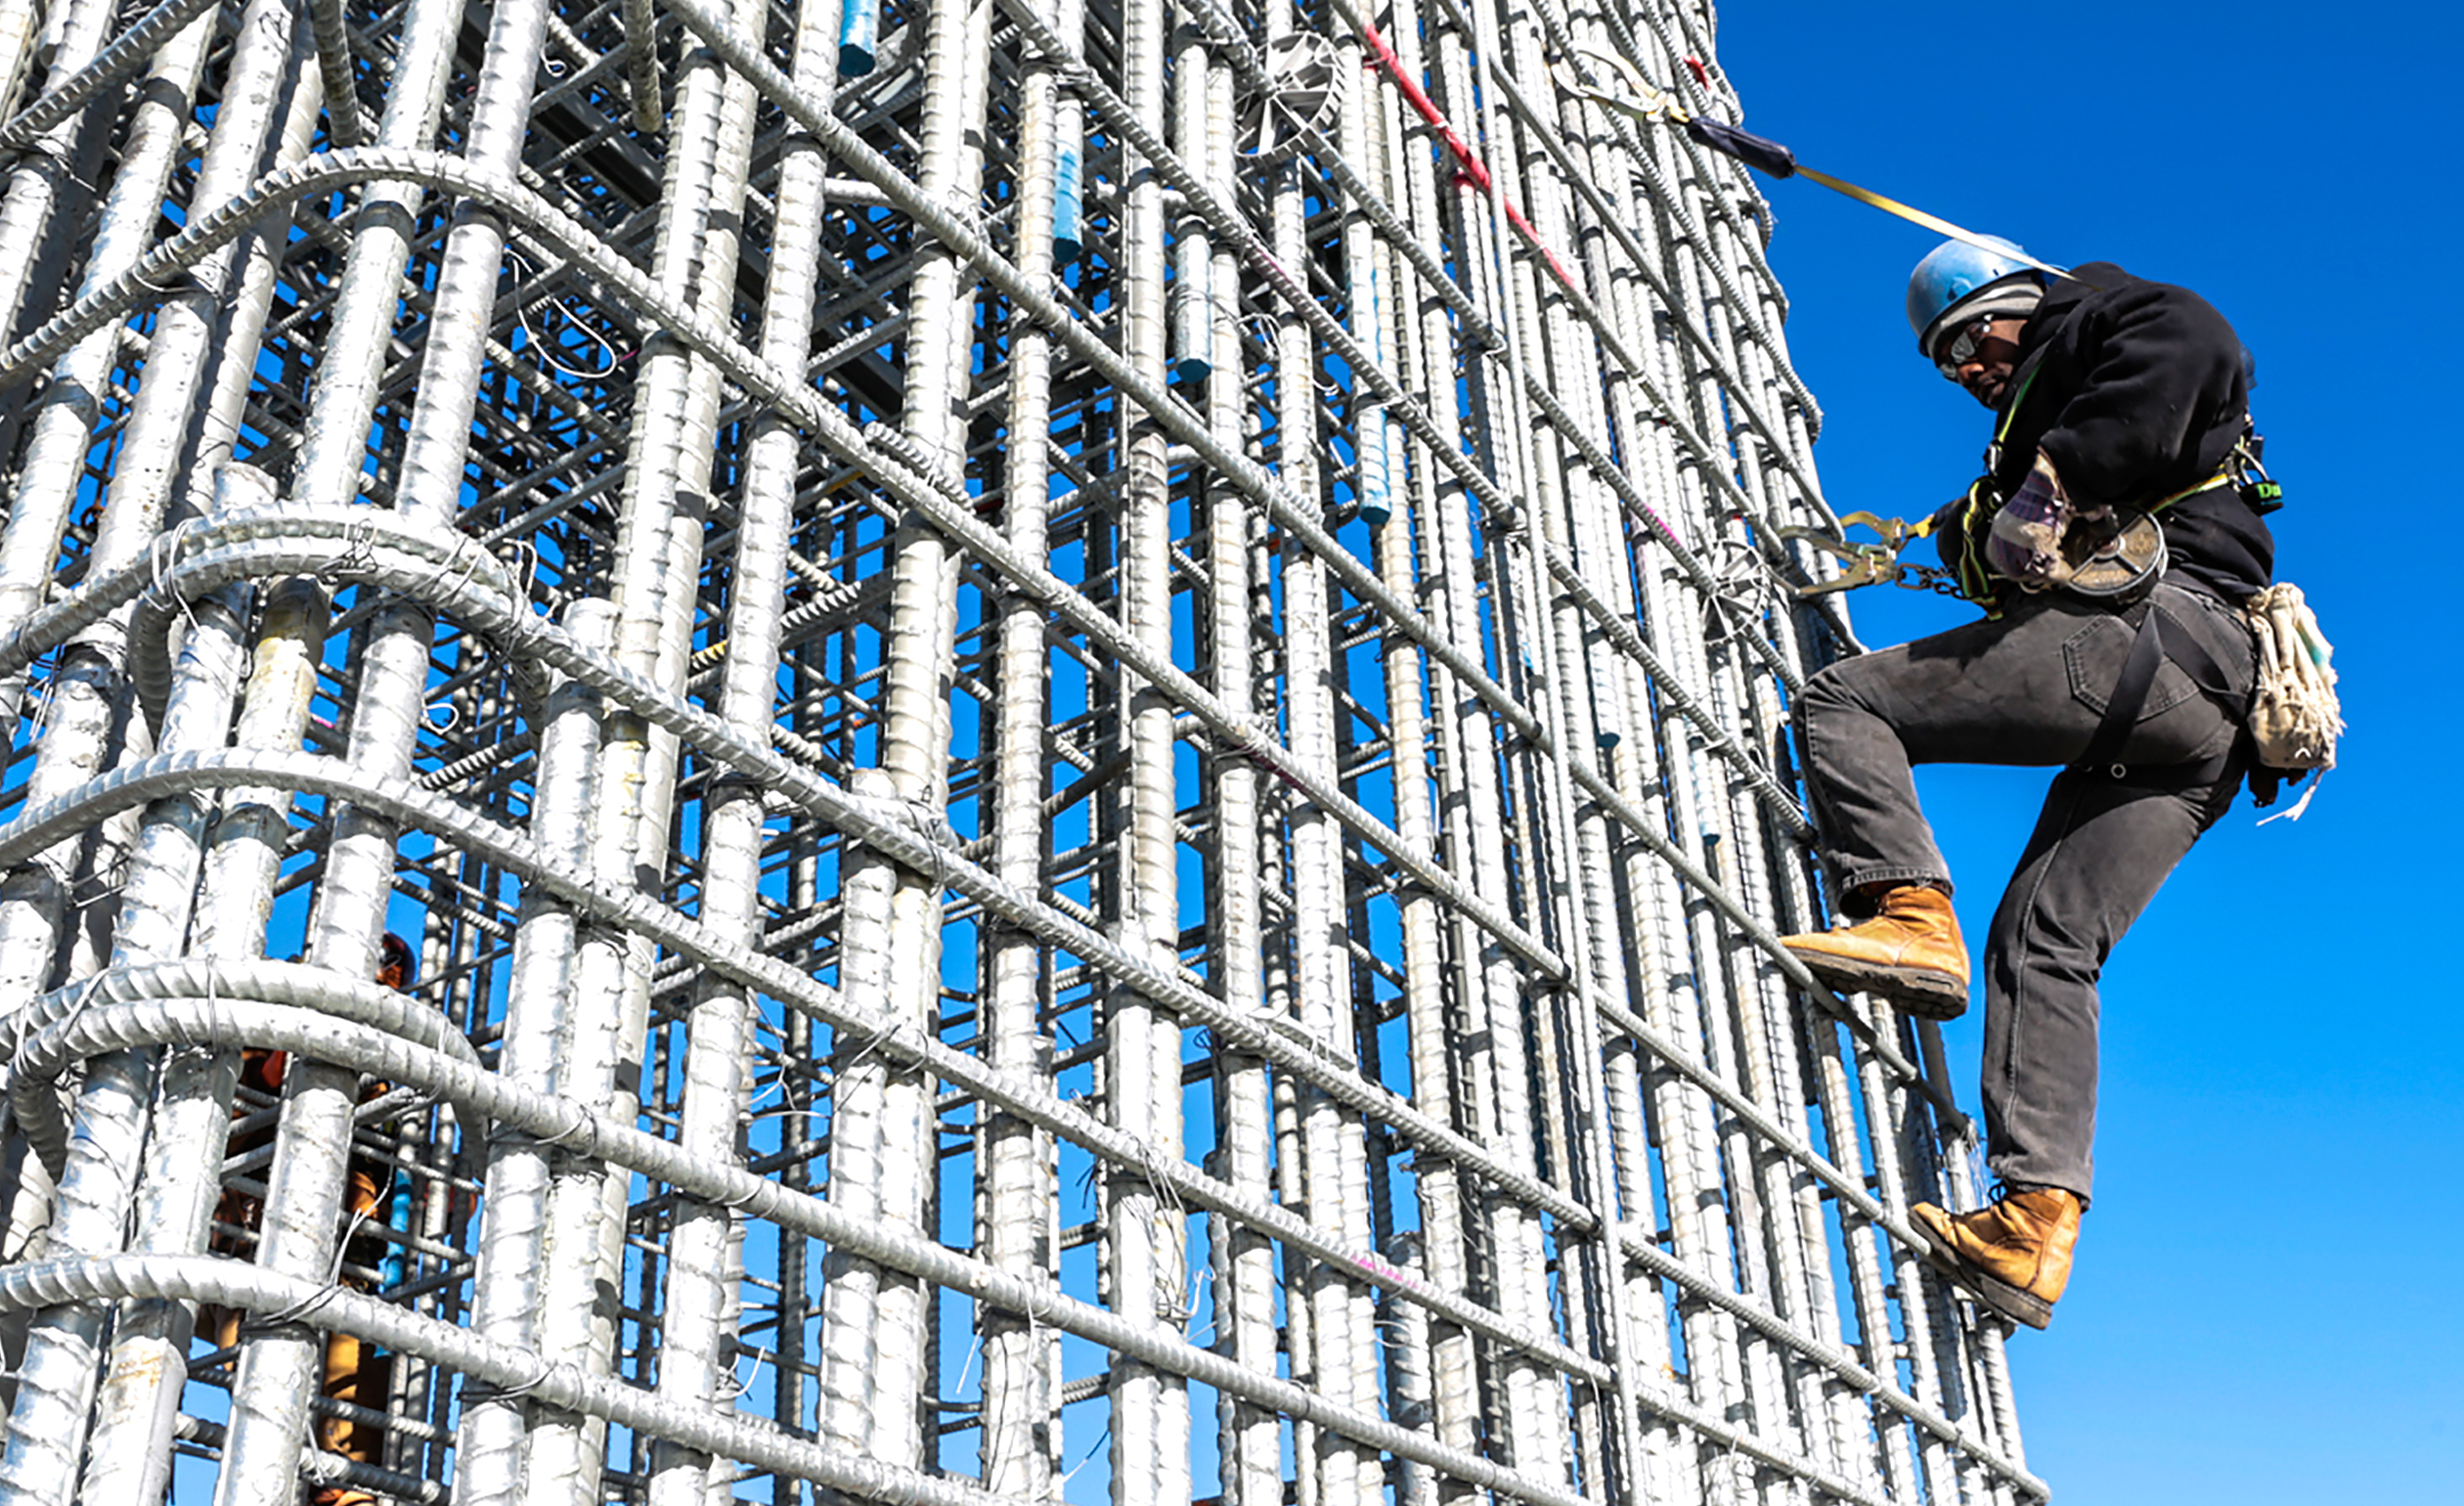 An ironworker scales a rebar cage while working on the Tappan Zee Bridge in Tarrytown, N.Y.